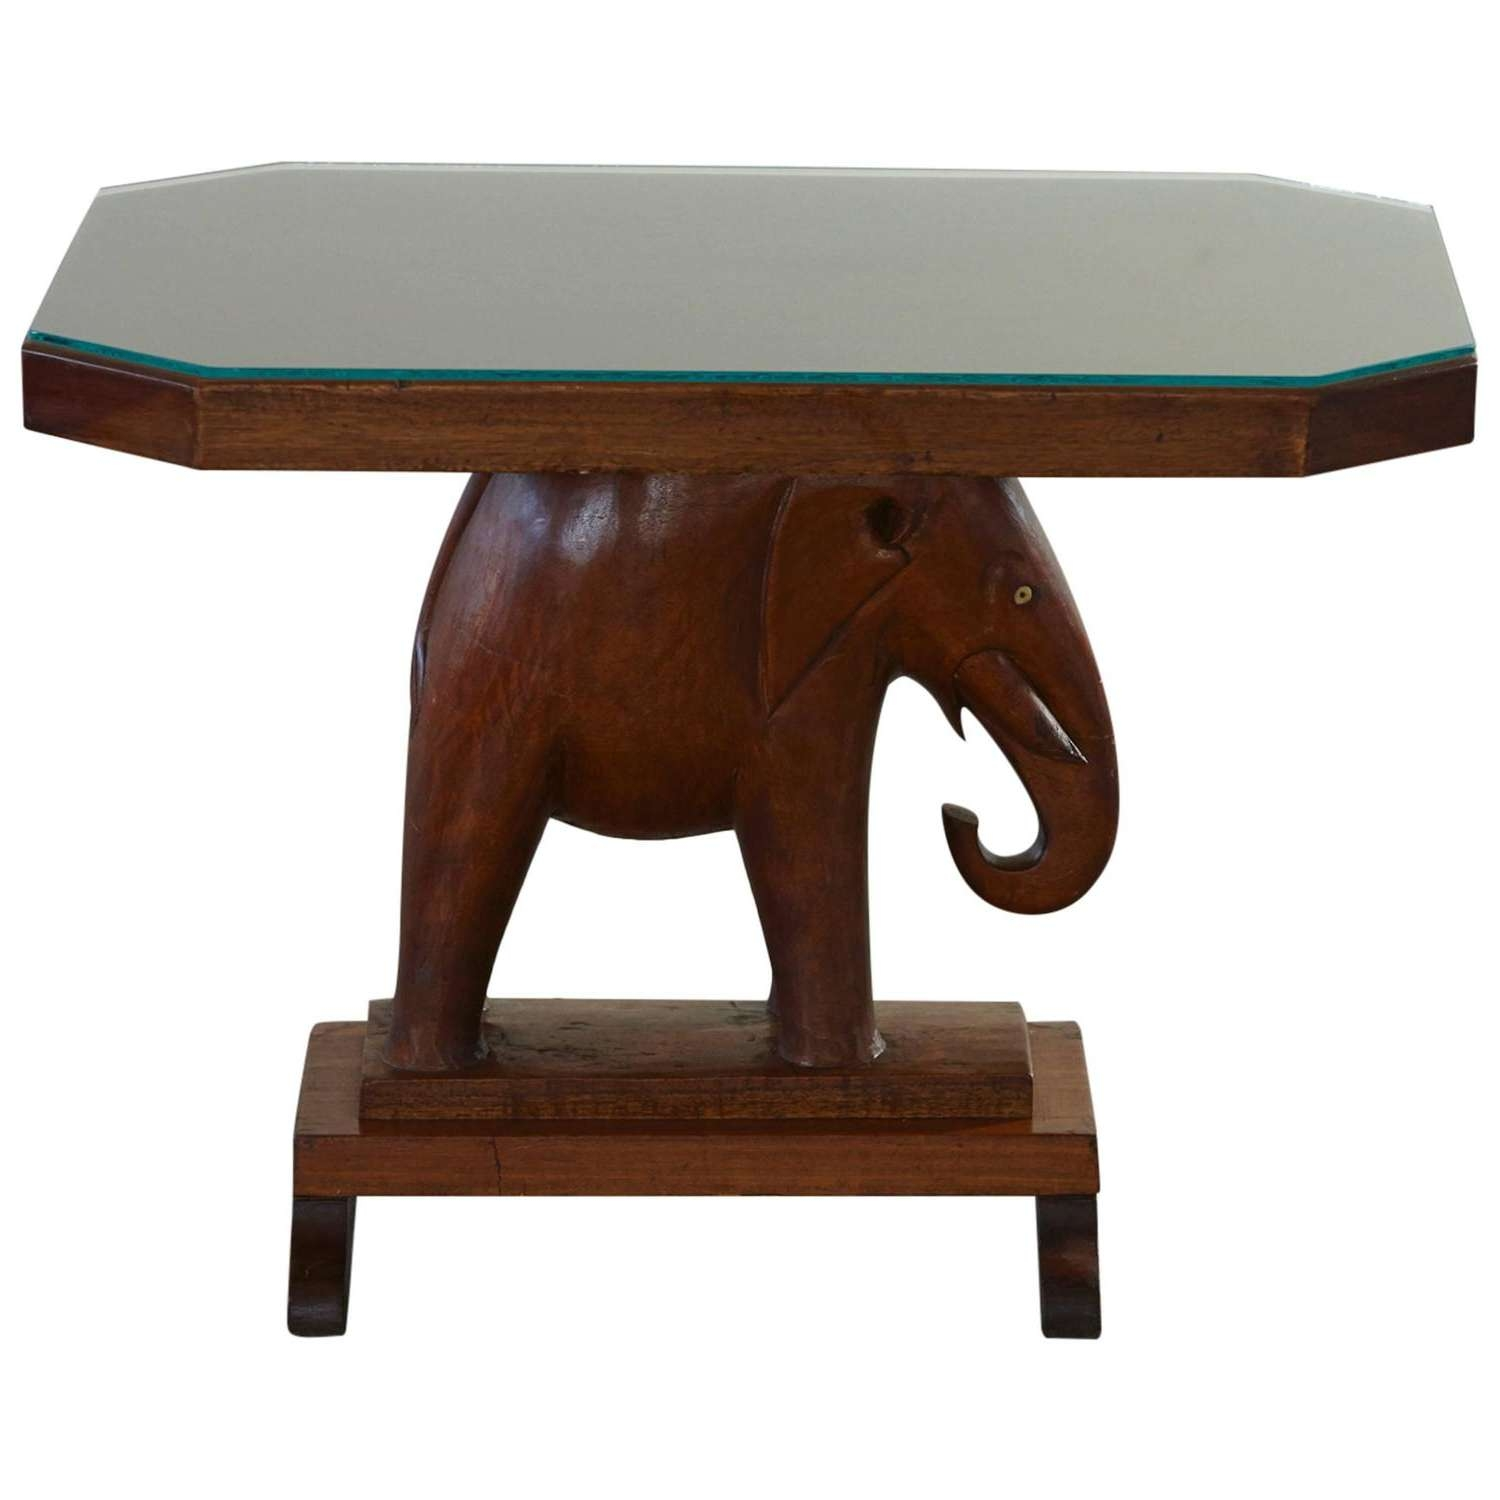 Rare Mahogany Table With Carved Elephant Base With Roosevelt Within Most Up To Date Elephant Coffee Tables (View 18 of 20)